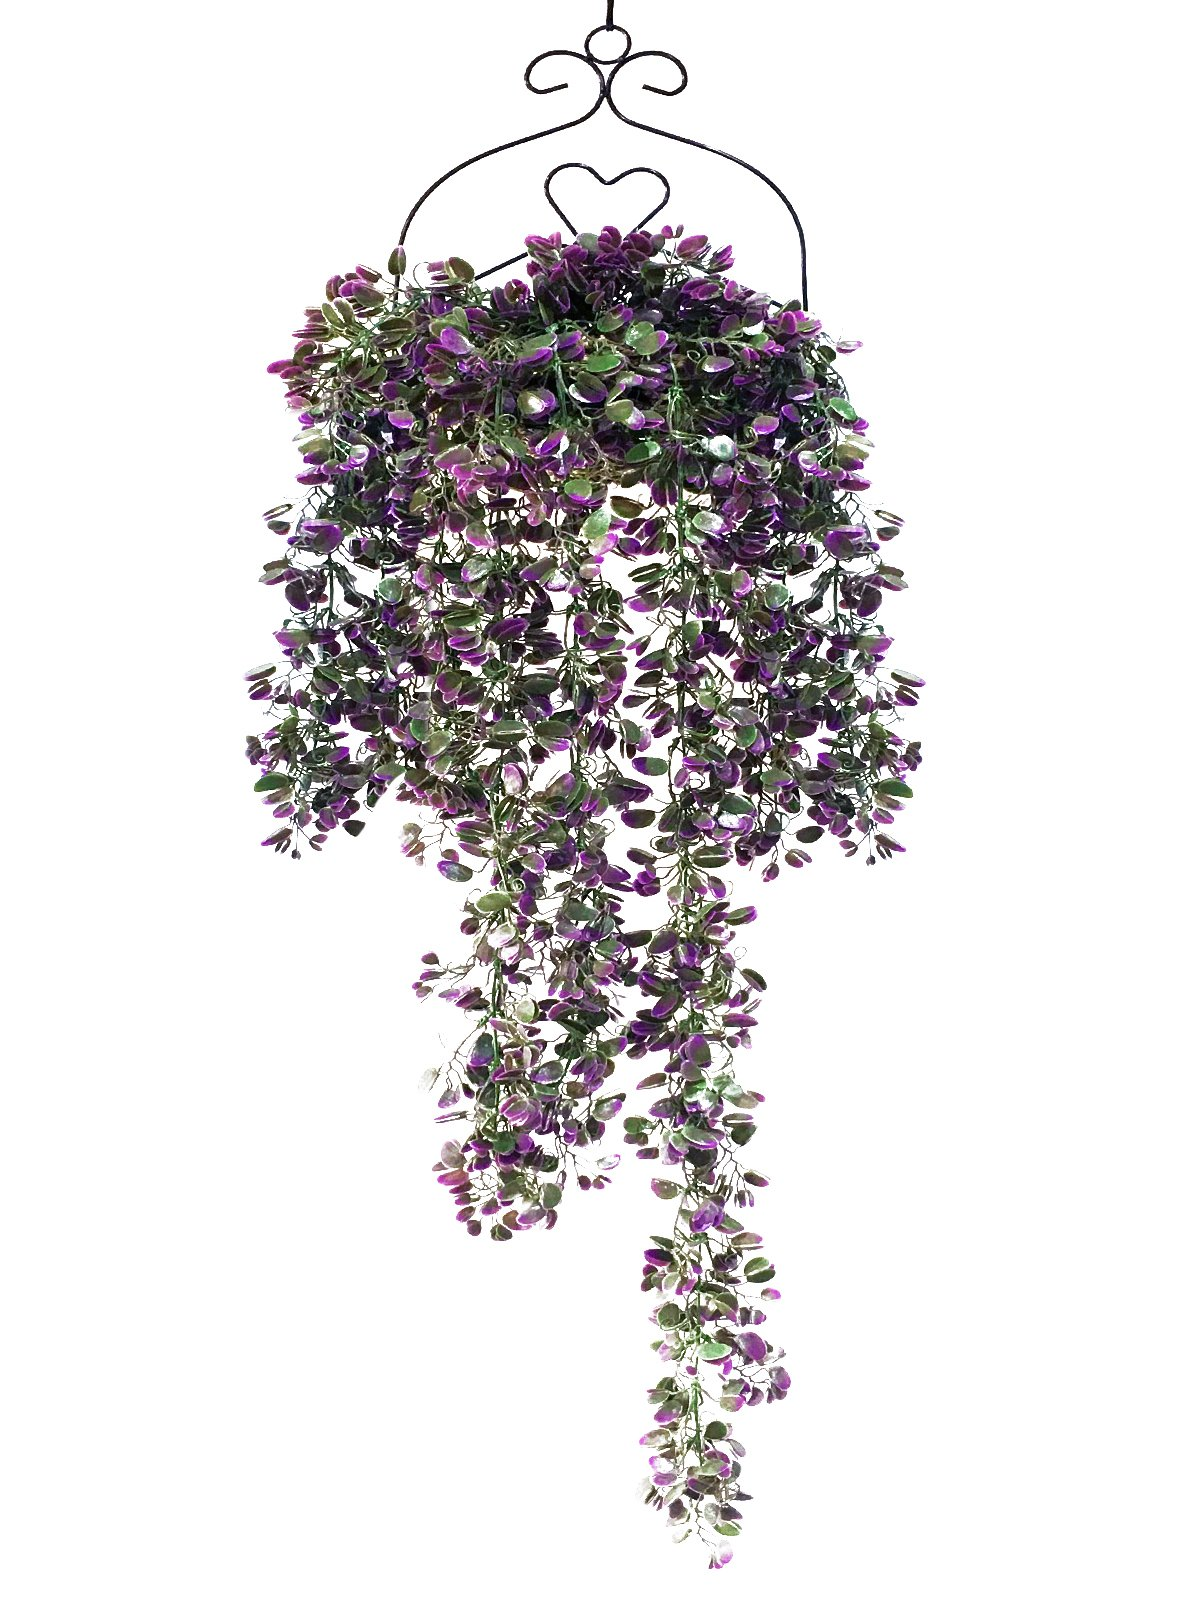 SHACOS Artificial Hanging Vine,Fake Ivy Greenery Rattan,Lush Butterfly Hanging Vine for Home Garden Wedding Décor (3.6 FT, Purple Butterfly Vine)